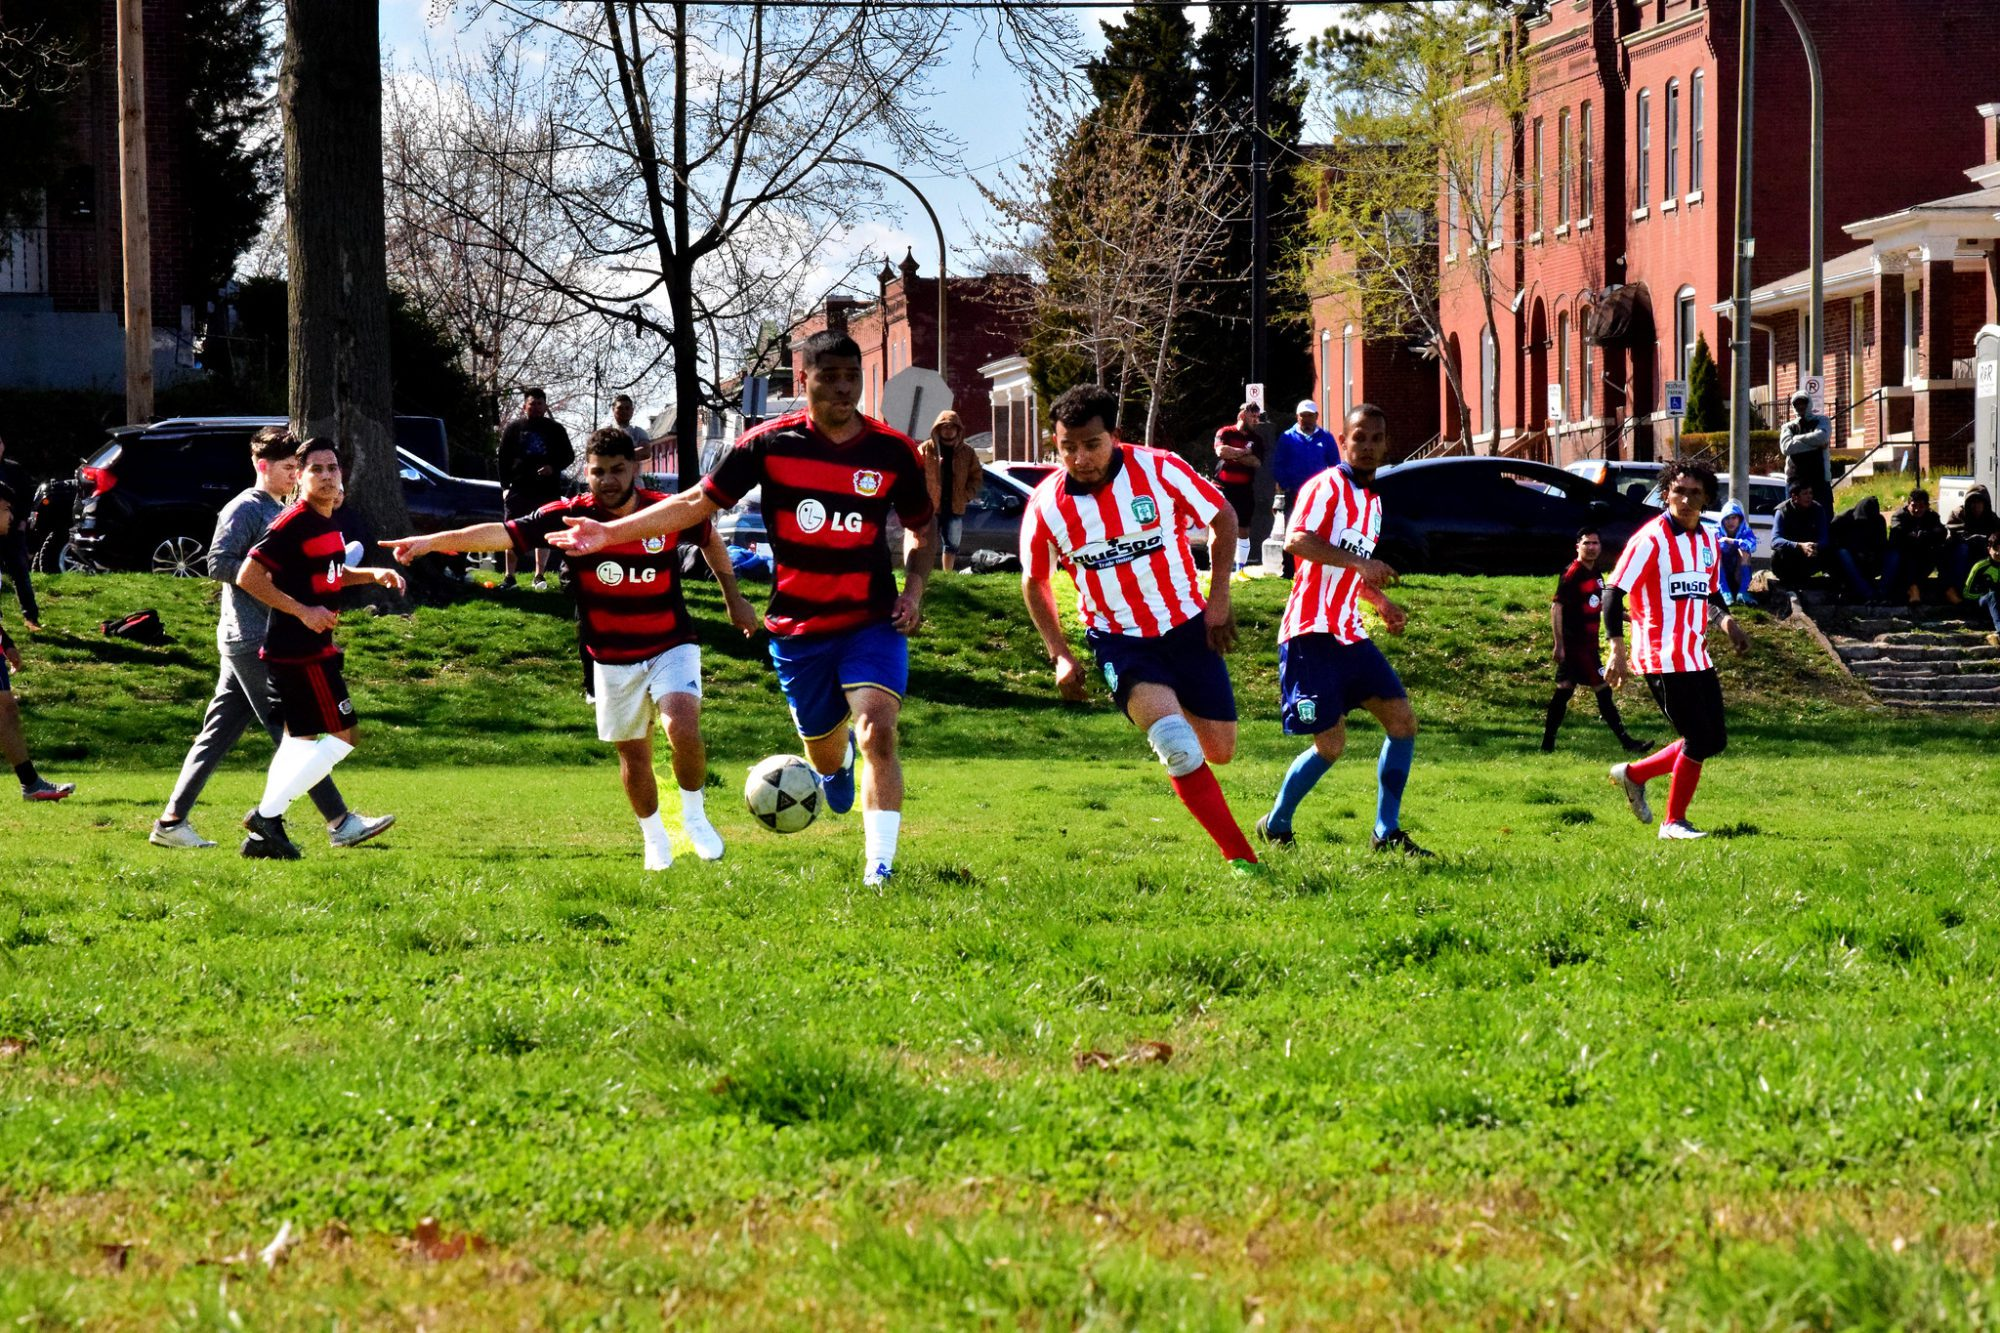 A Liga Latina soccer game at Marquette Park in Dutchtown, St. Louis, MO.